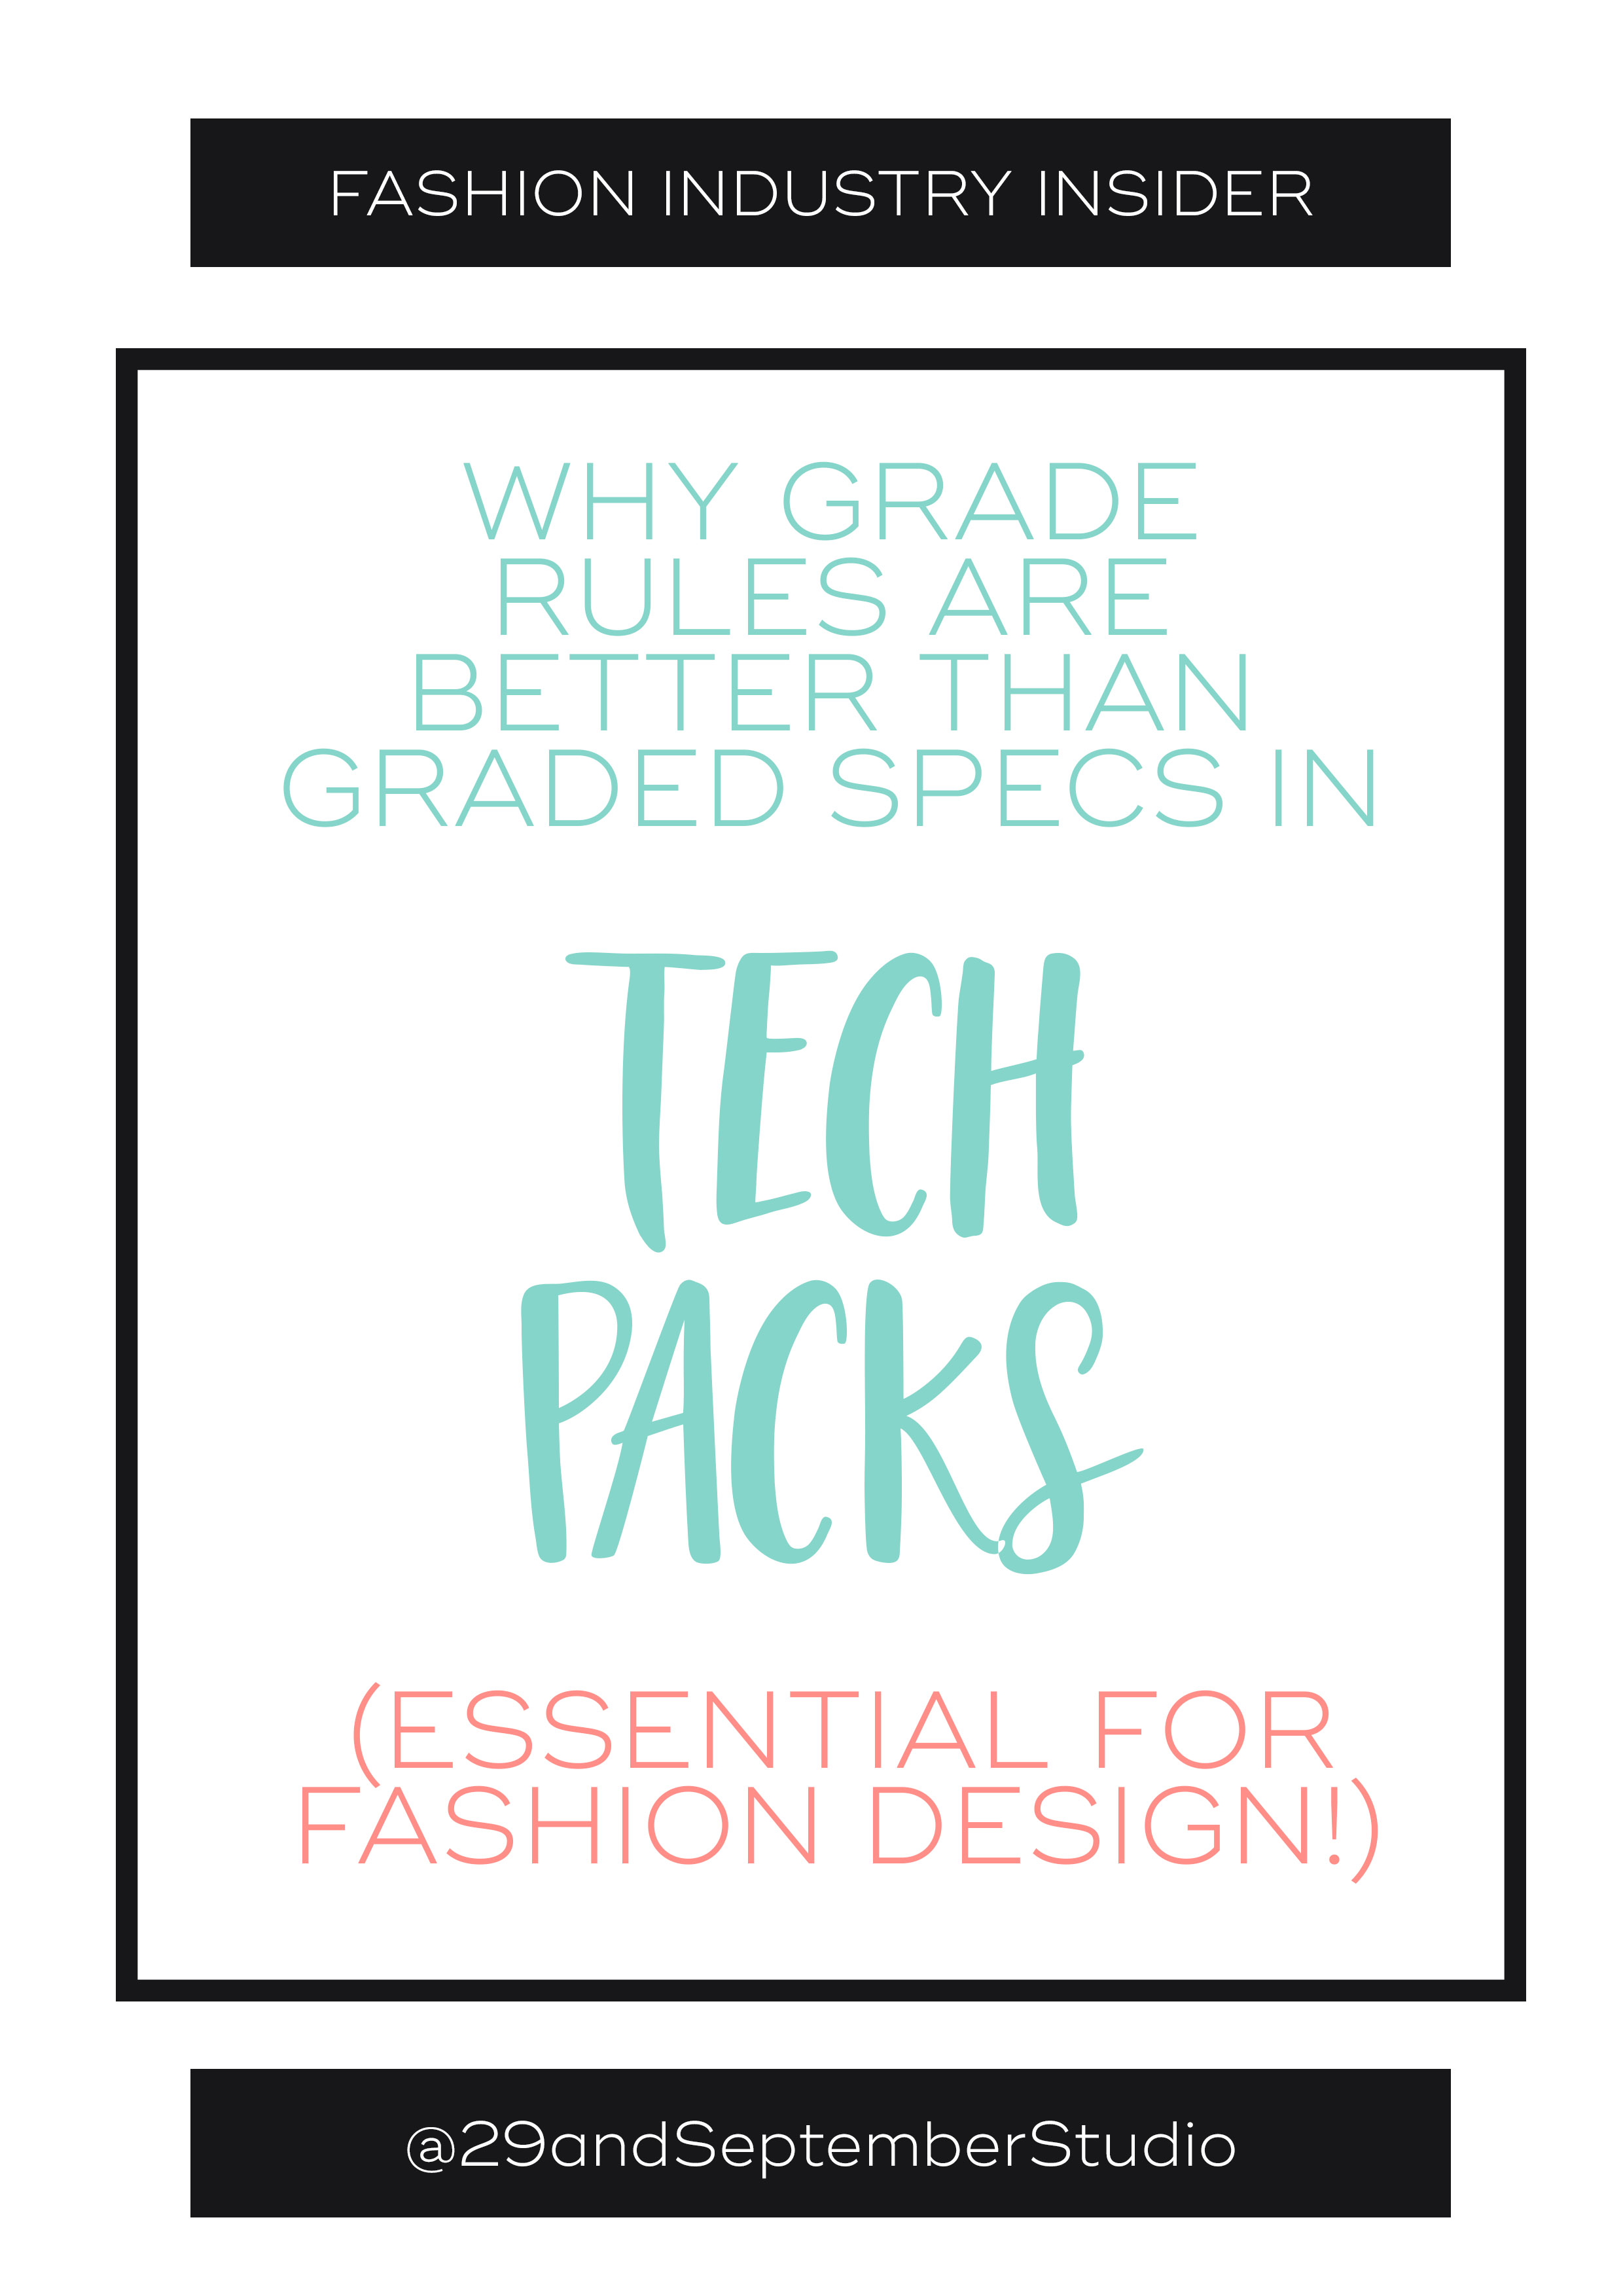 Graded tech packs; what they are + how to use them for fashion design